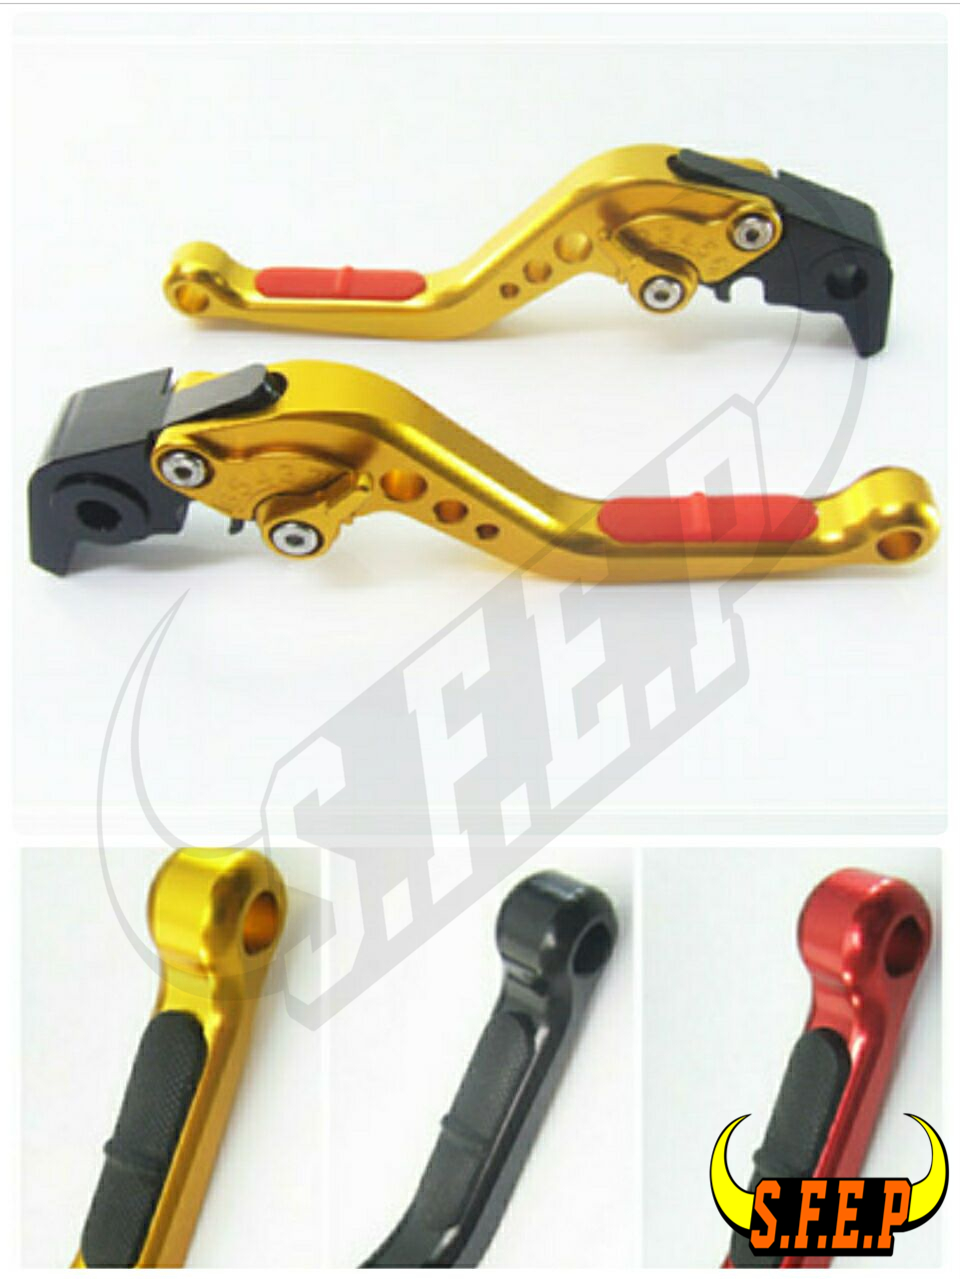 CNC Adjustable Motorcycle Brake and Clutch Levers with Anti-Slip For Honda CBR 600 F2,F3,F4,F4i 1991-2007